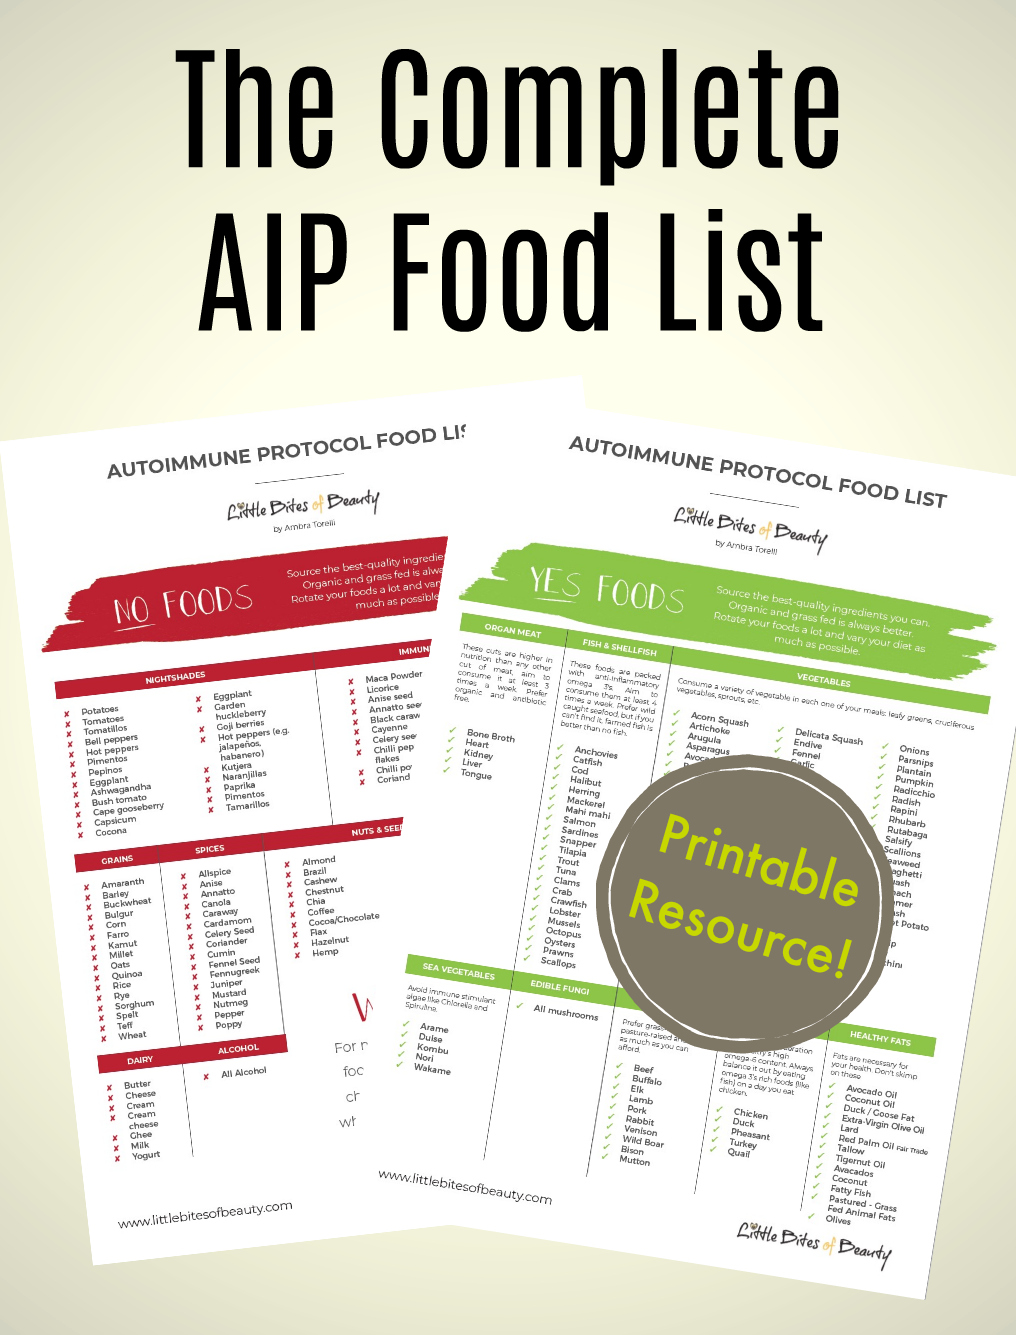 The Complete AIP Food List for the Autoimmune Protocol